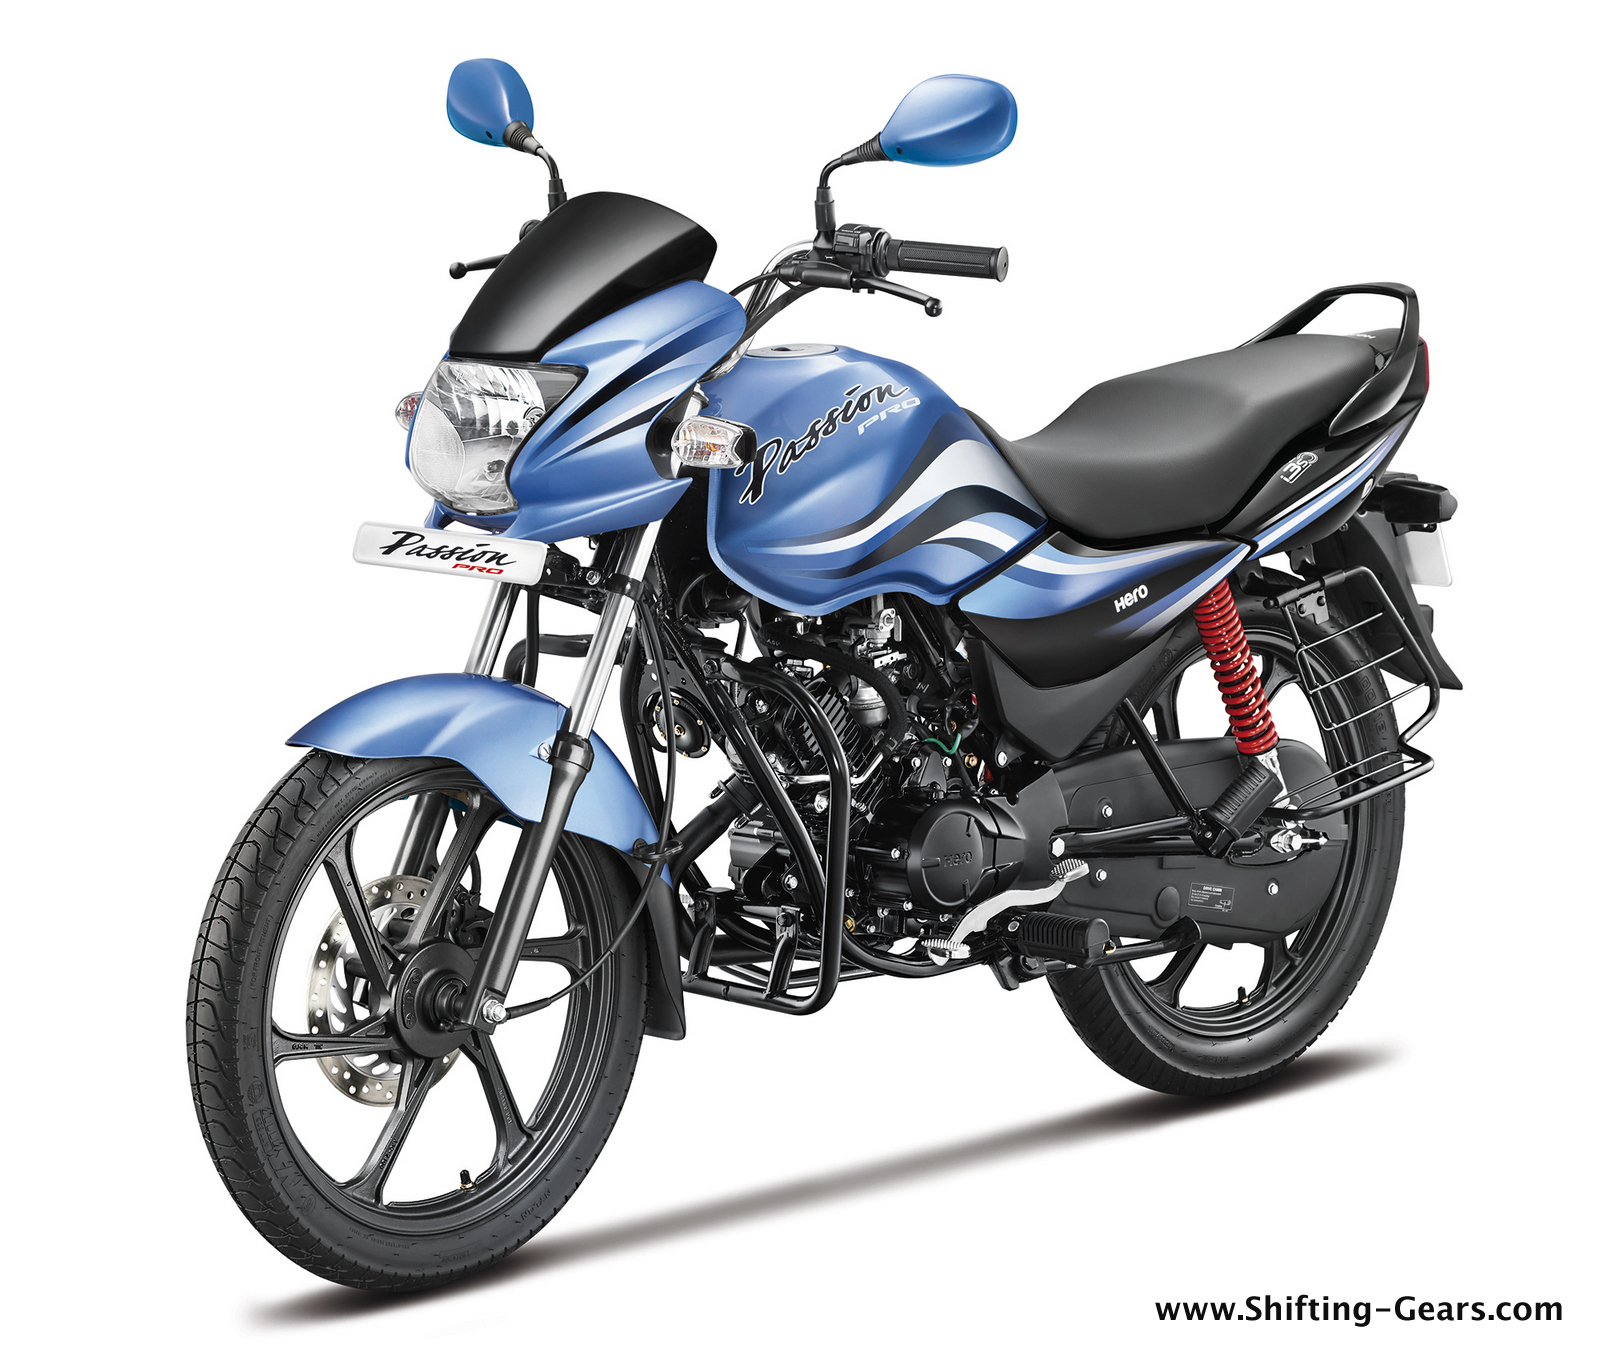 Hero Motocorp Passion Pro Photo Gallery Shifting Gears